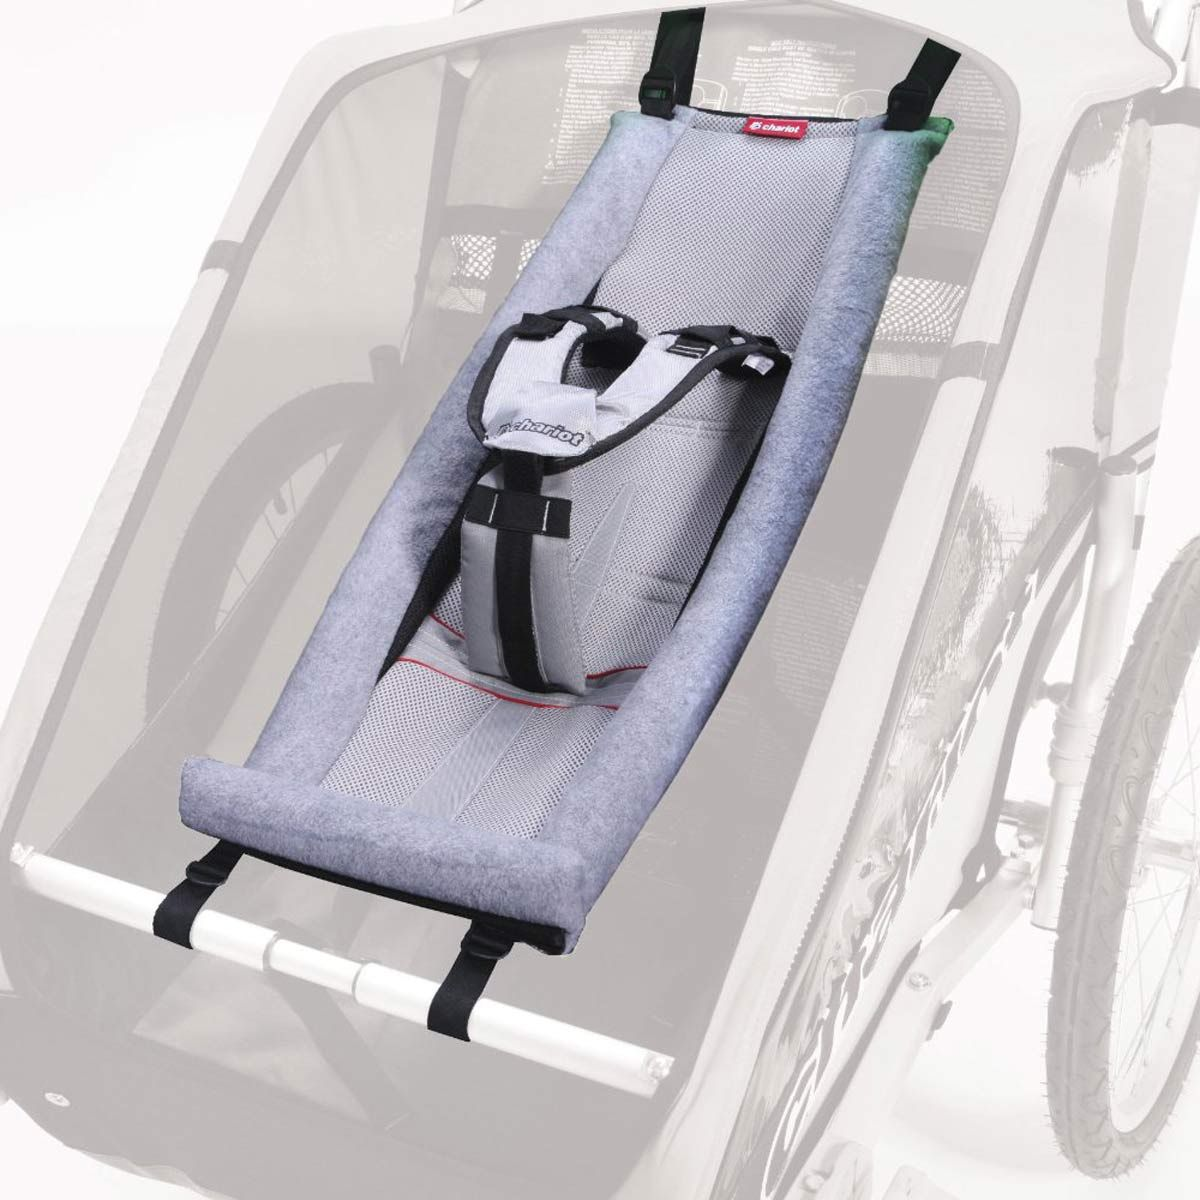 INFANT SLING 110M THULE CHARIOT 100.00 Thule chariot